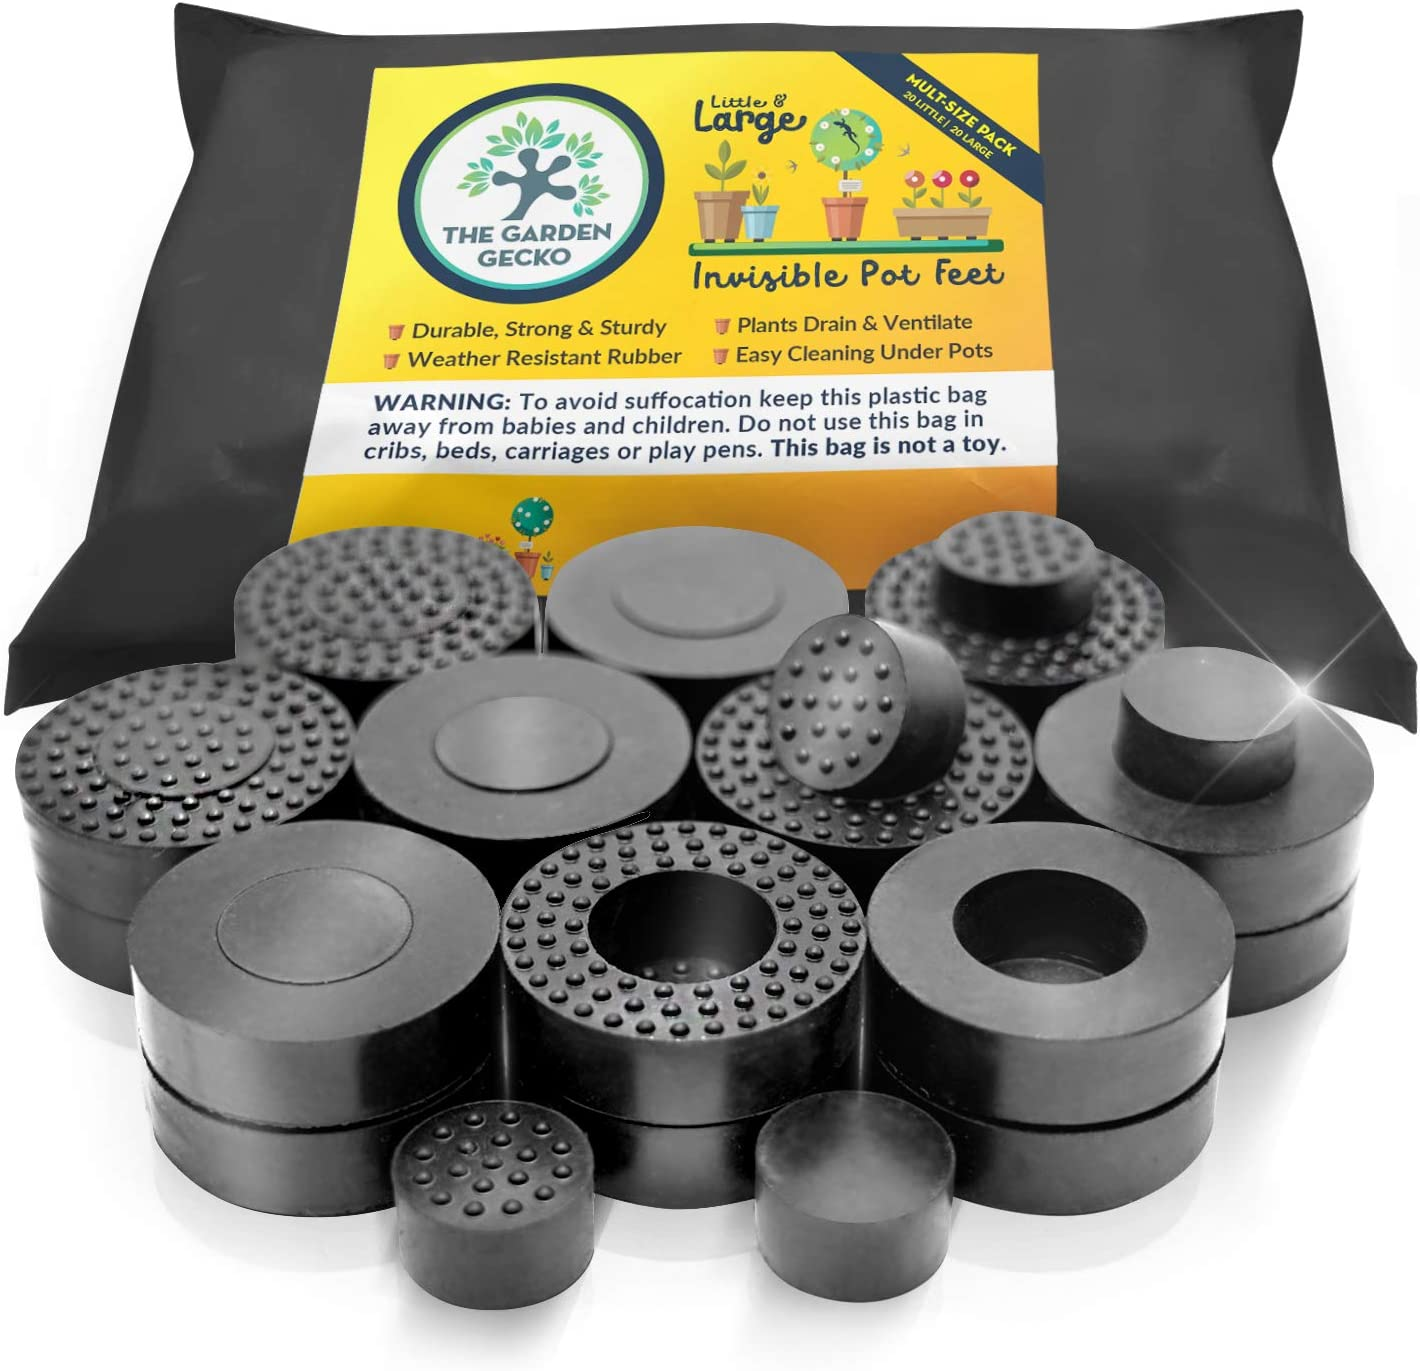 The Garden Gecko Little & Large Invisible Pot feet for outdoor plant pots and flowers | A plant caddy with floor grip | 20 PACK dual size